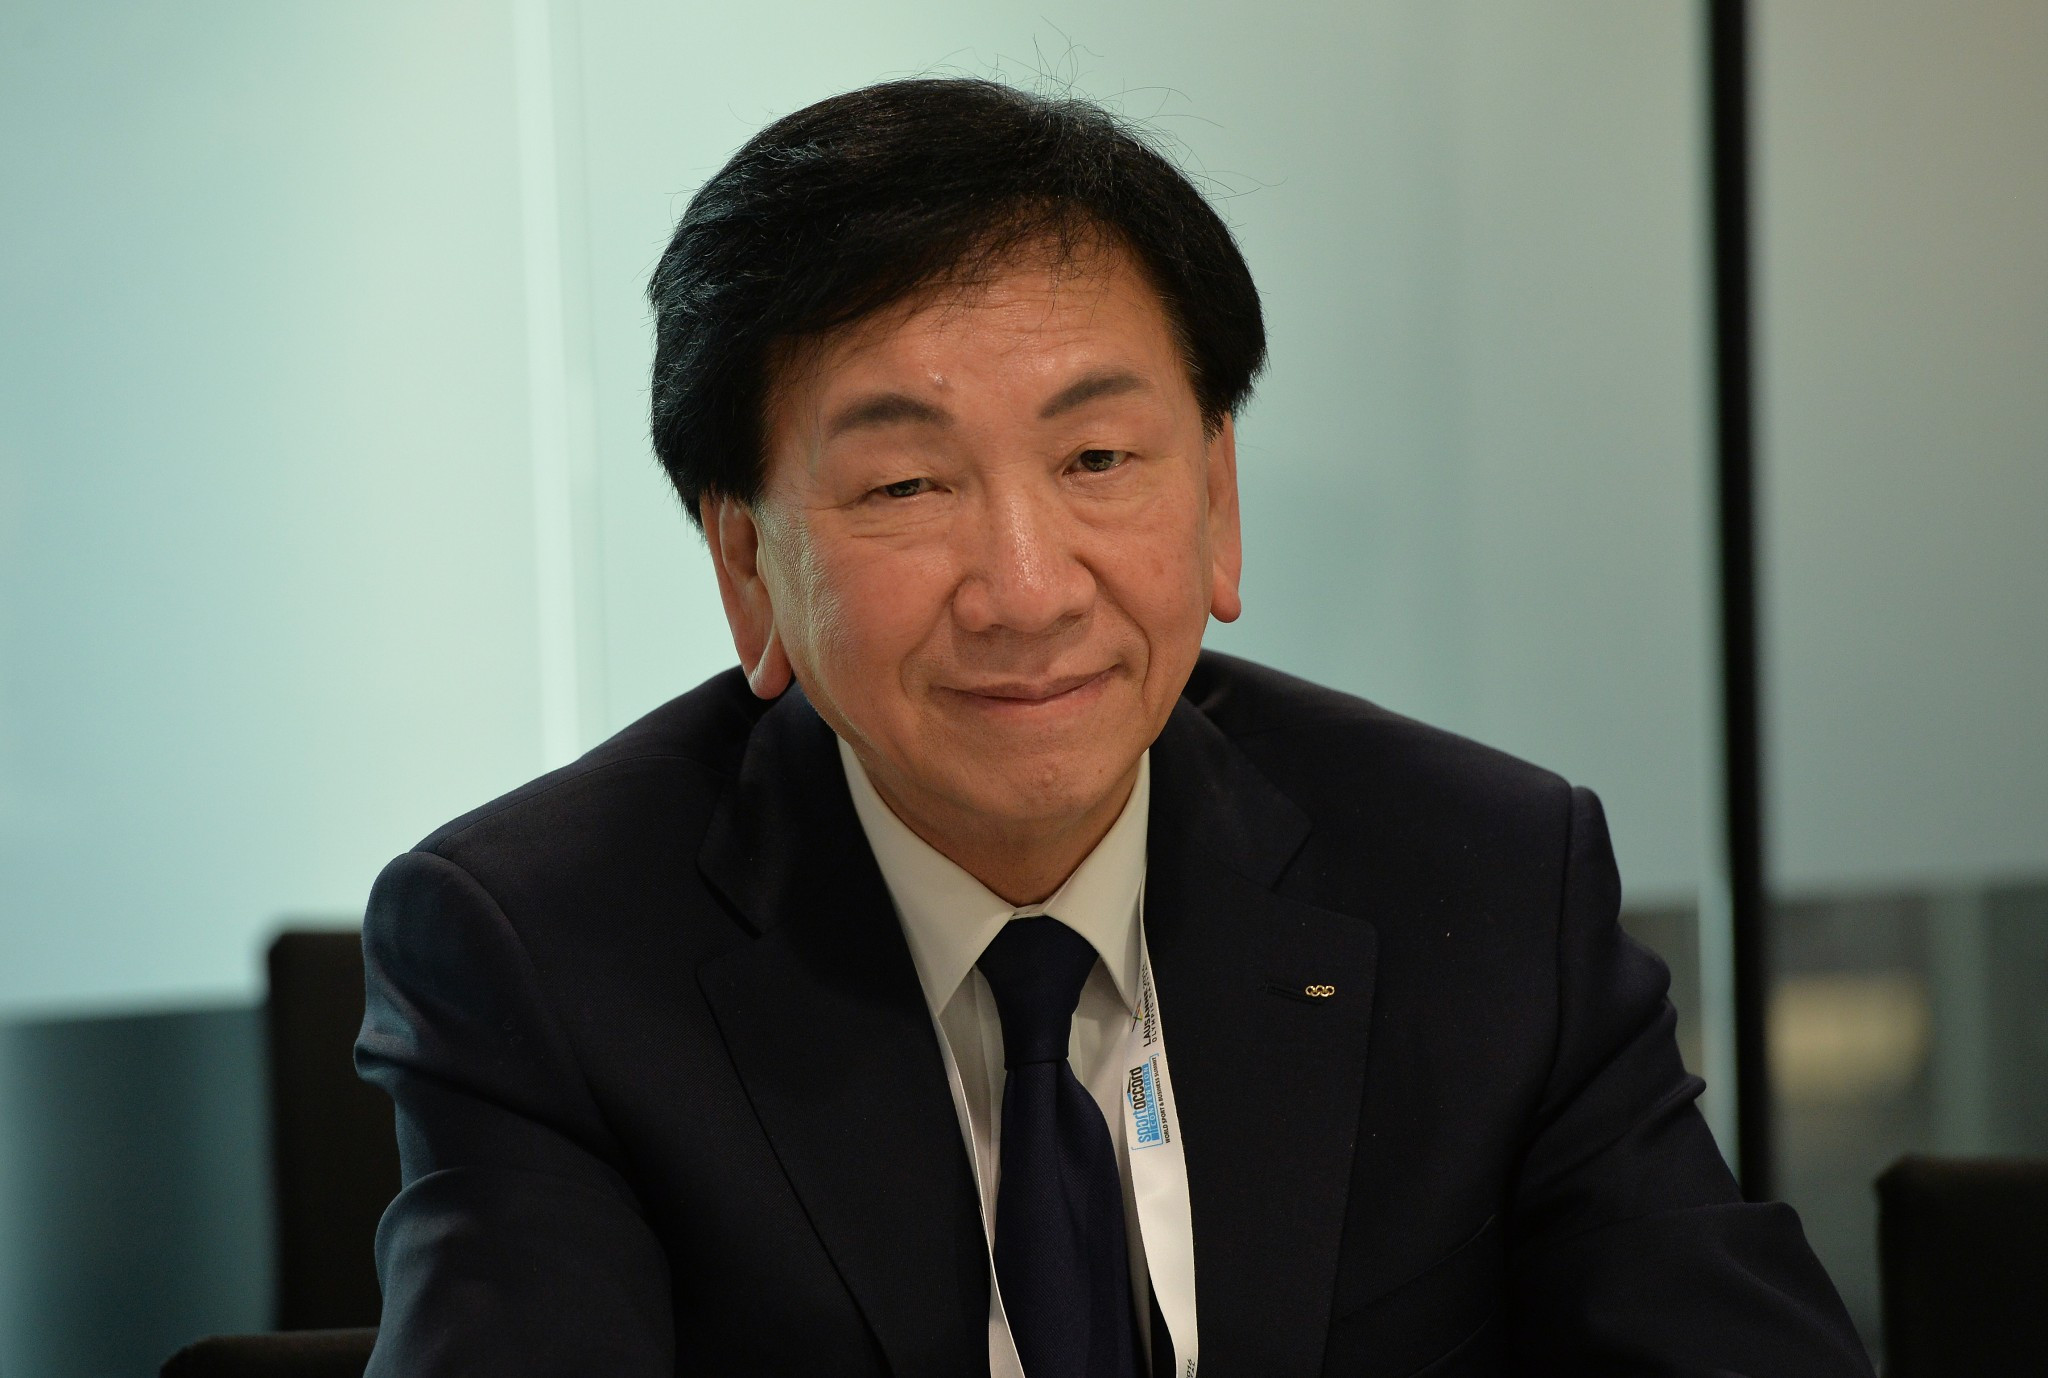 AIBA President C K Wu is vowing to continue despite Executive Committee opposition ©Getty Images